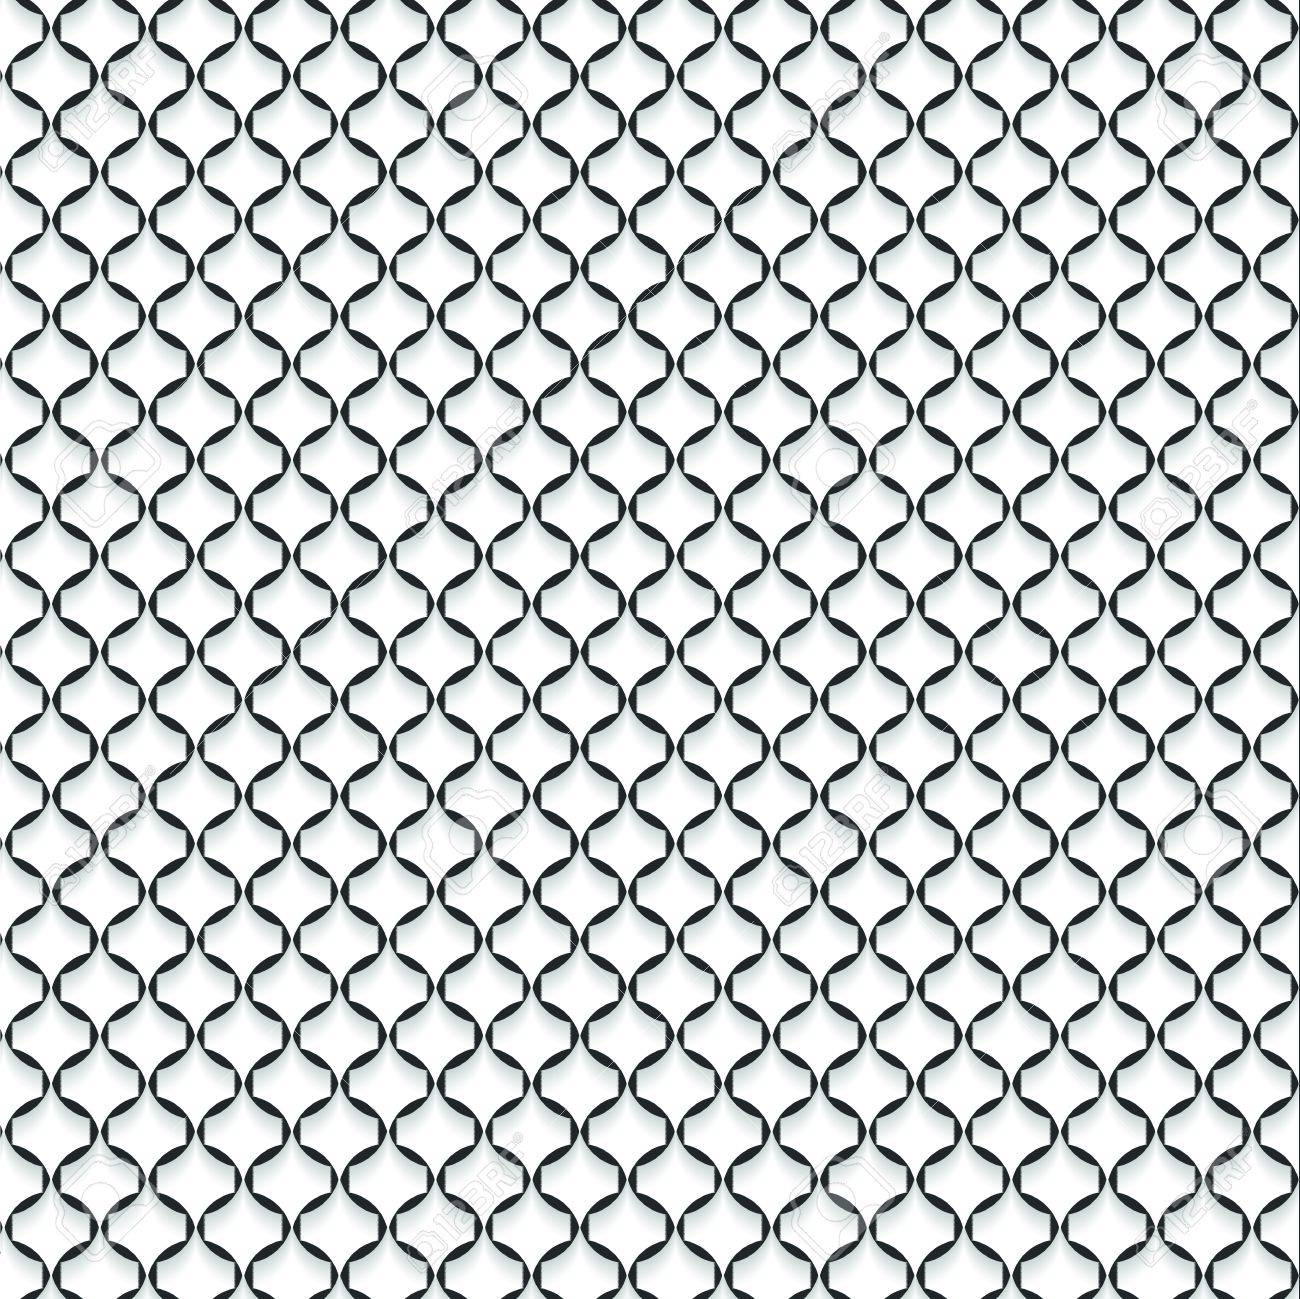 White and black background of textured structure. Stock Vector - 17911834